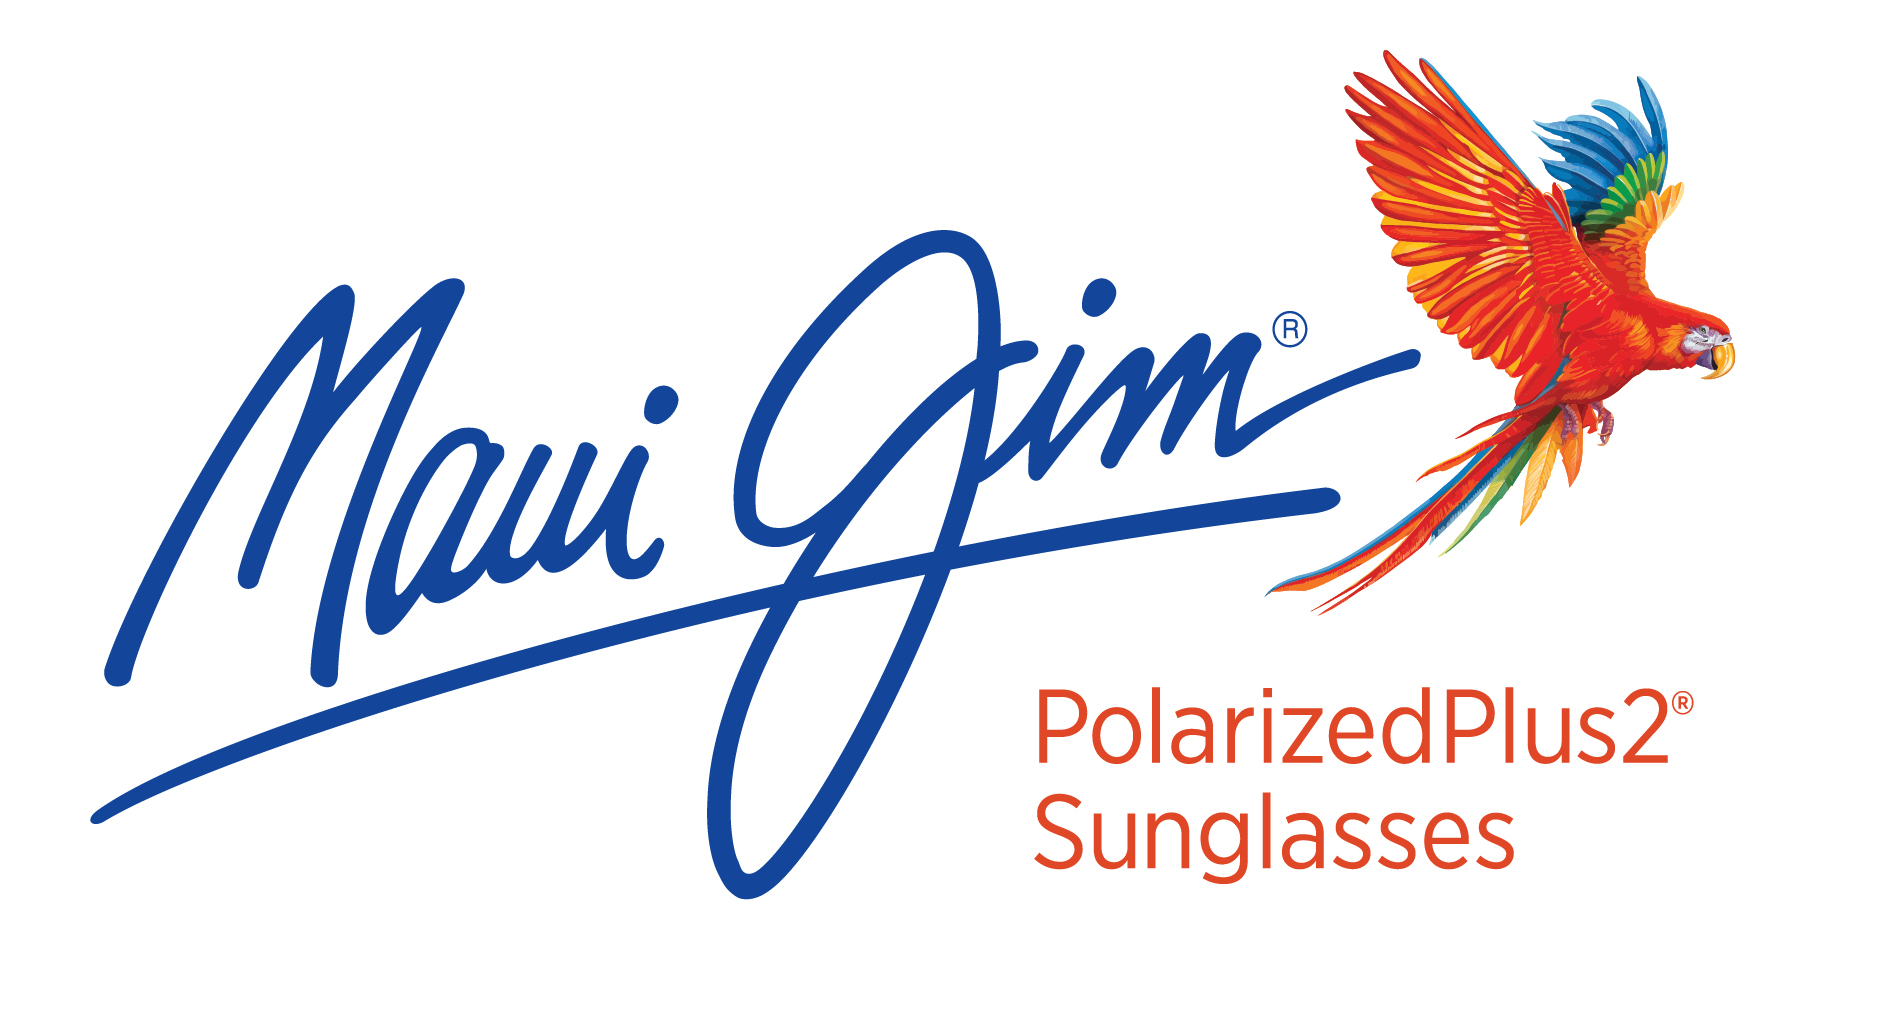 b10679c73c3a Please contact Maui Jim South Africa on 010 015 1500. Email Luciano Caolo  at lcaolo@mauijim.com. Visit mauijim.com, follow us on Facebook, or on  Twitter and ...